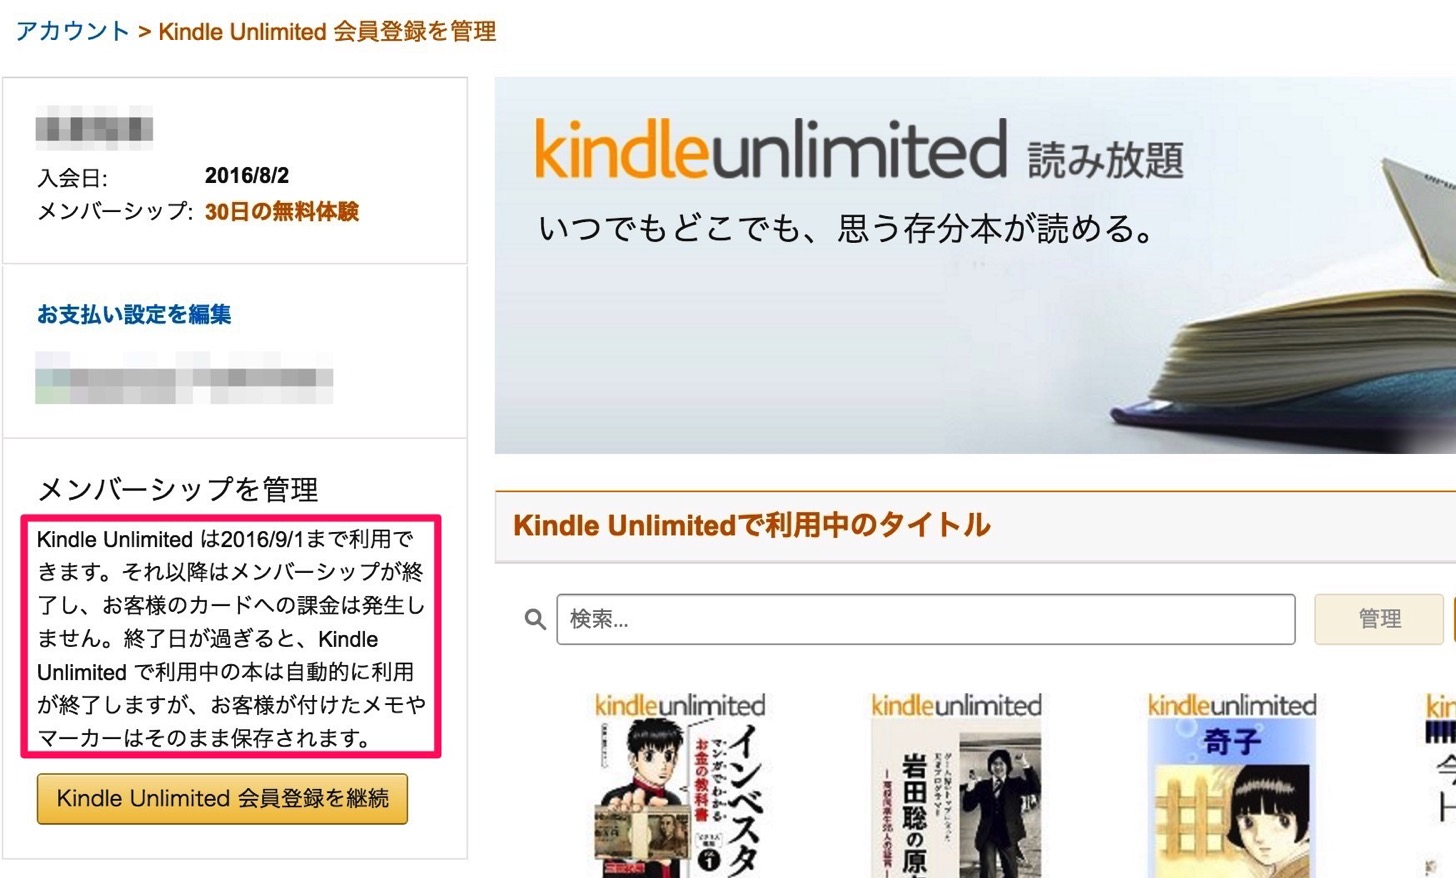 Kindle Unlimitedの解約が完了。